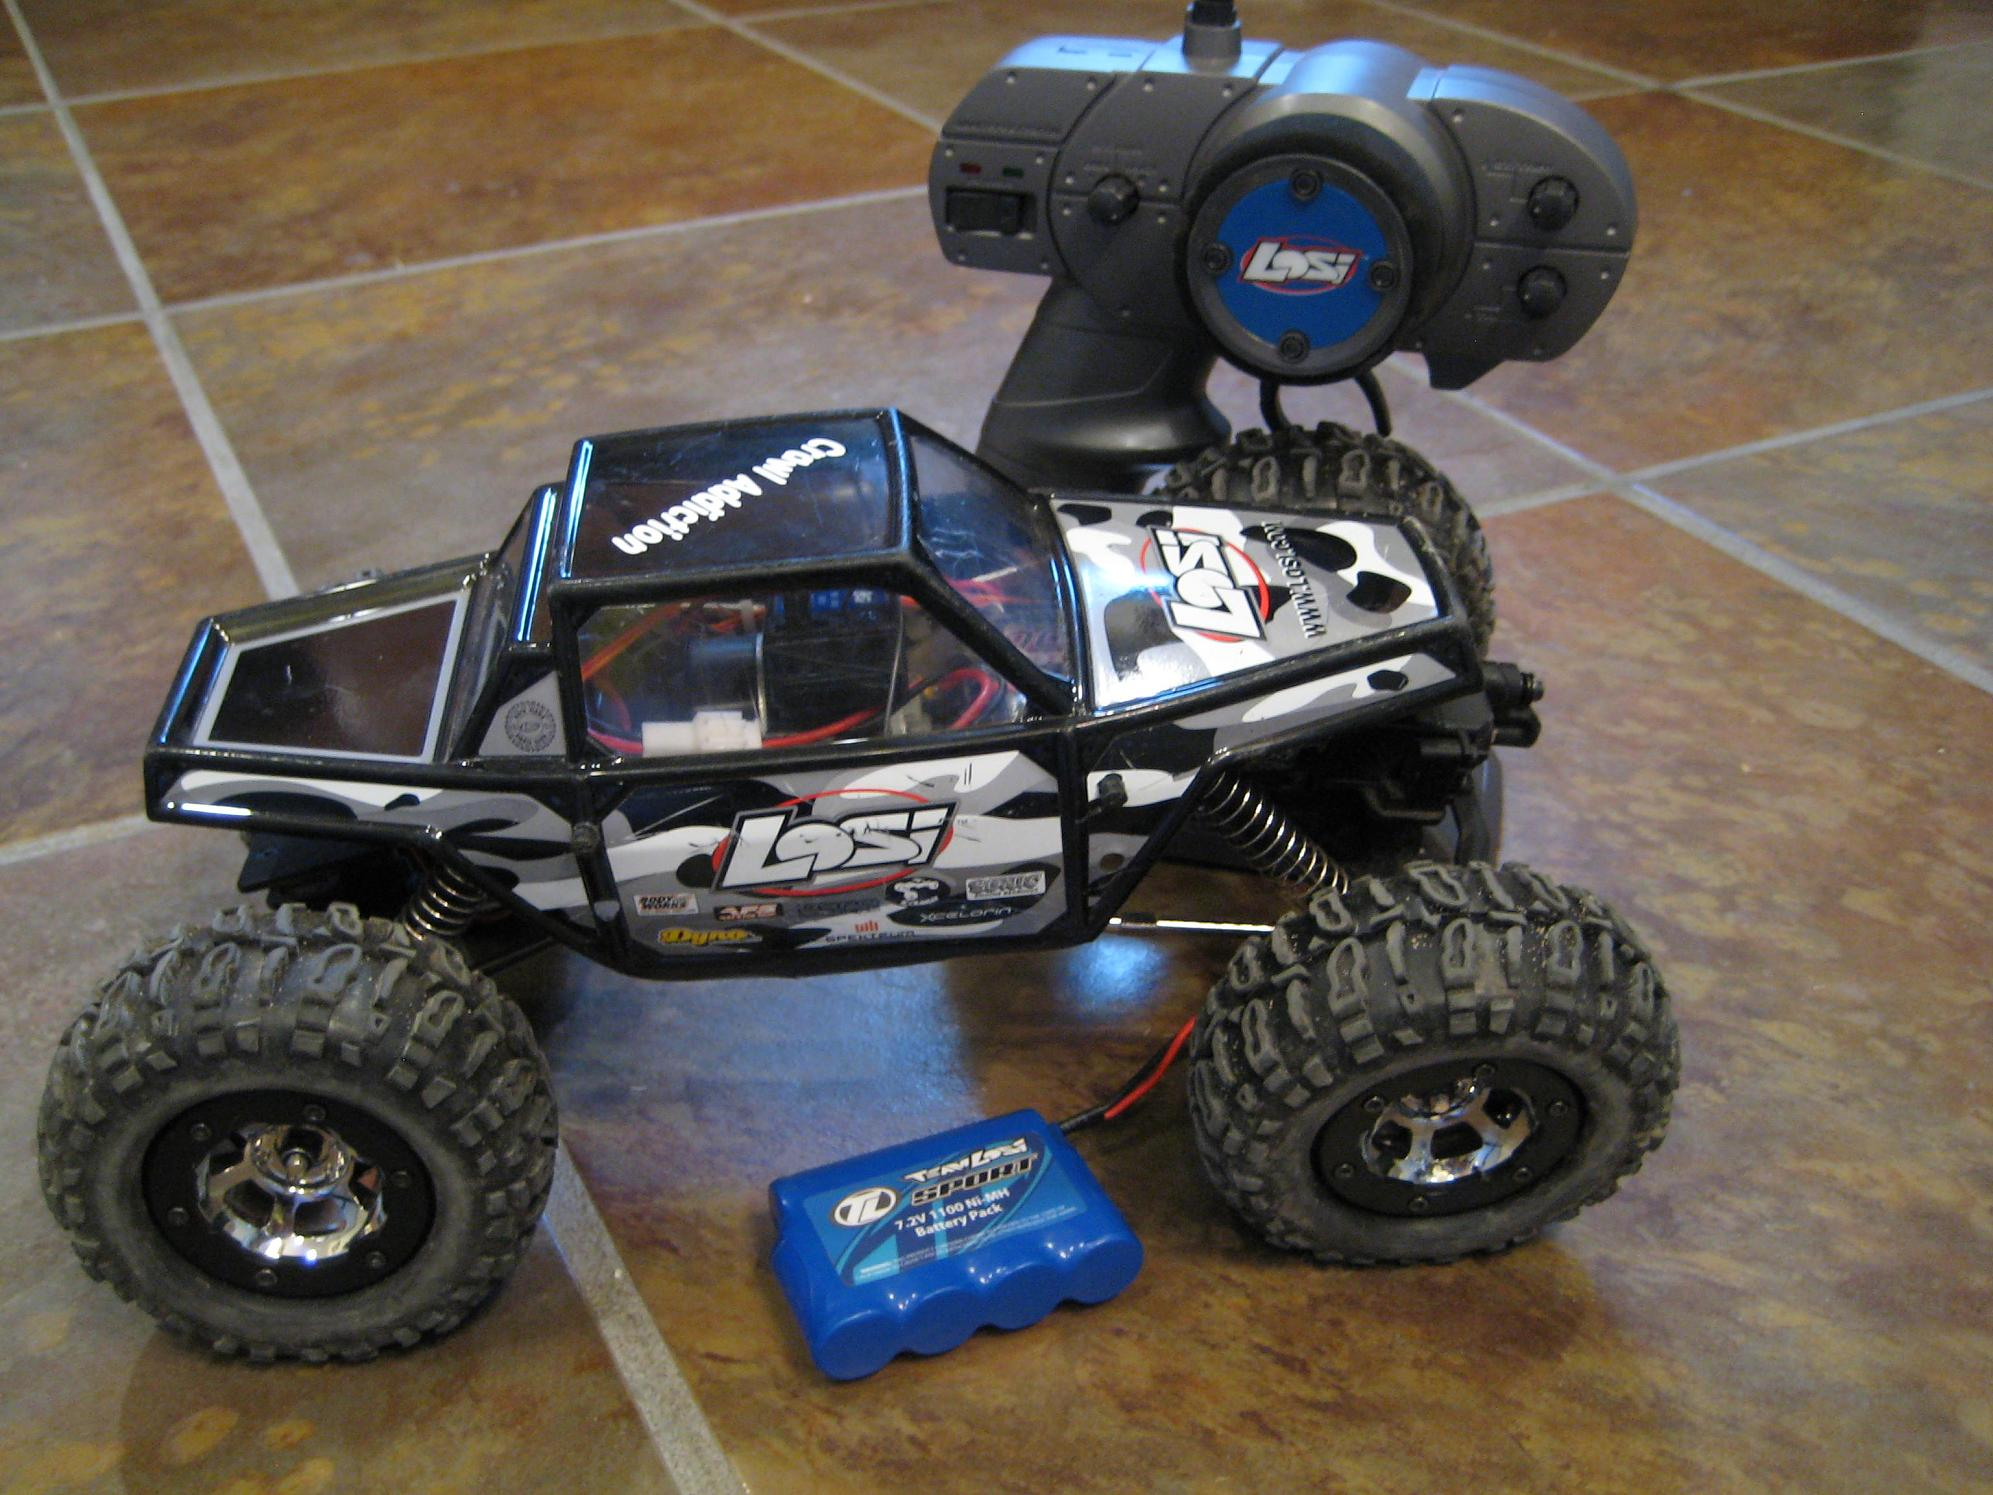 Modded Losi Mini Rock Crawler RTR possible 2 2 trade img 1217